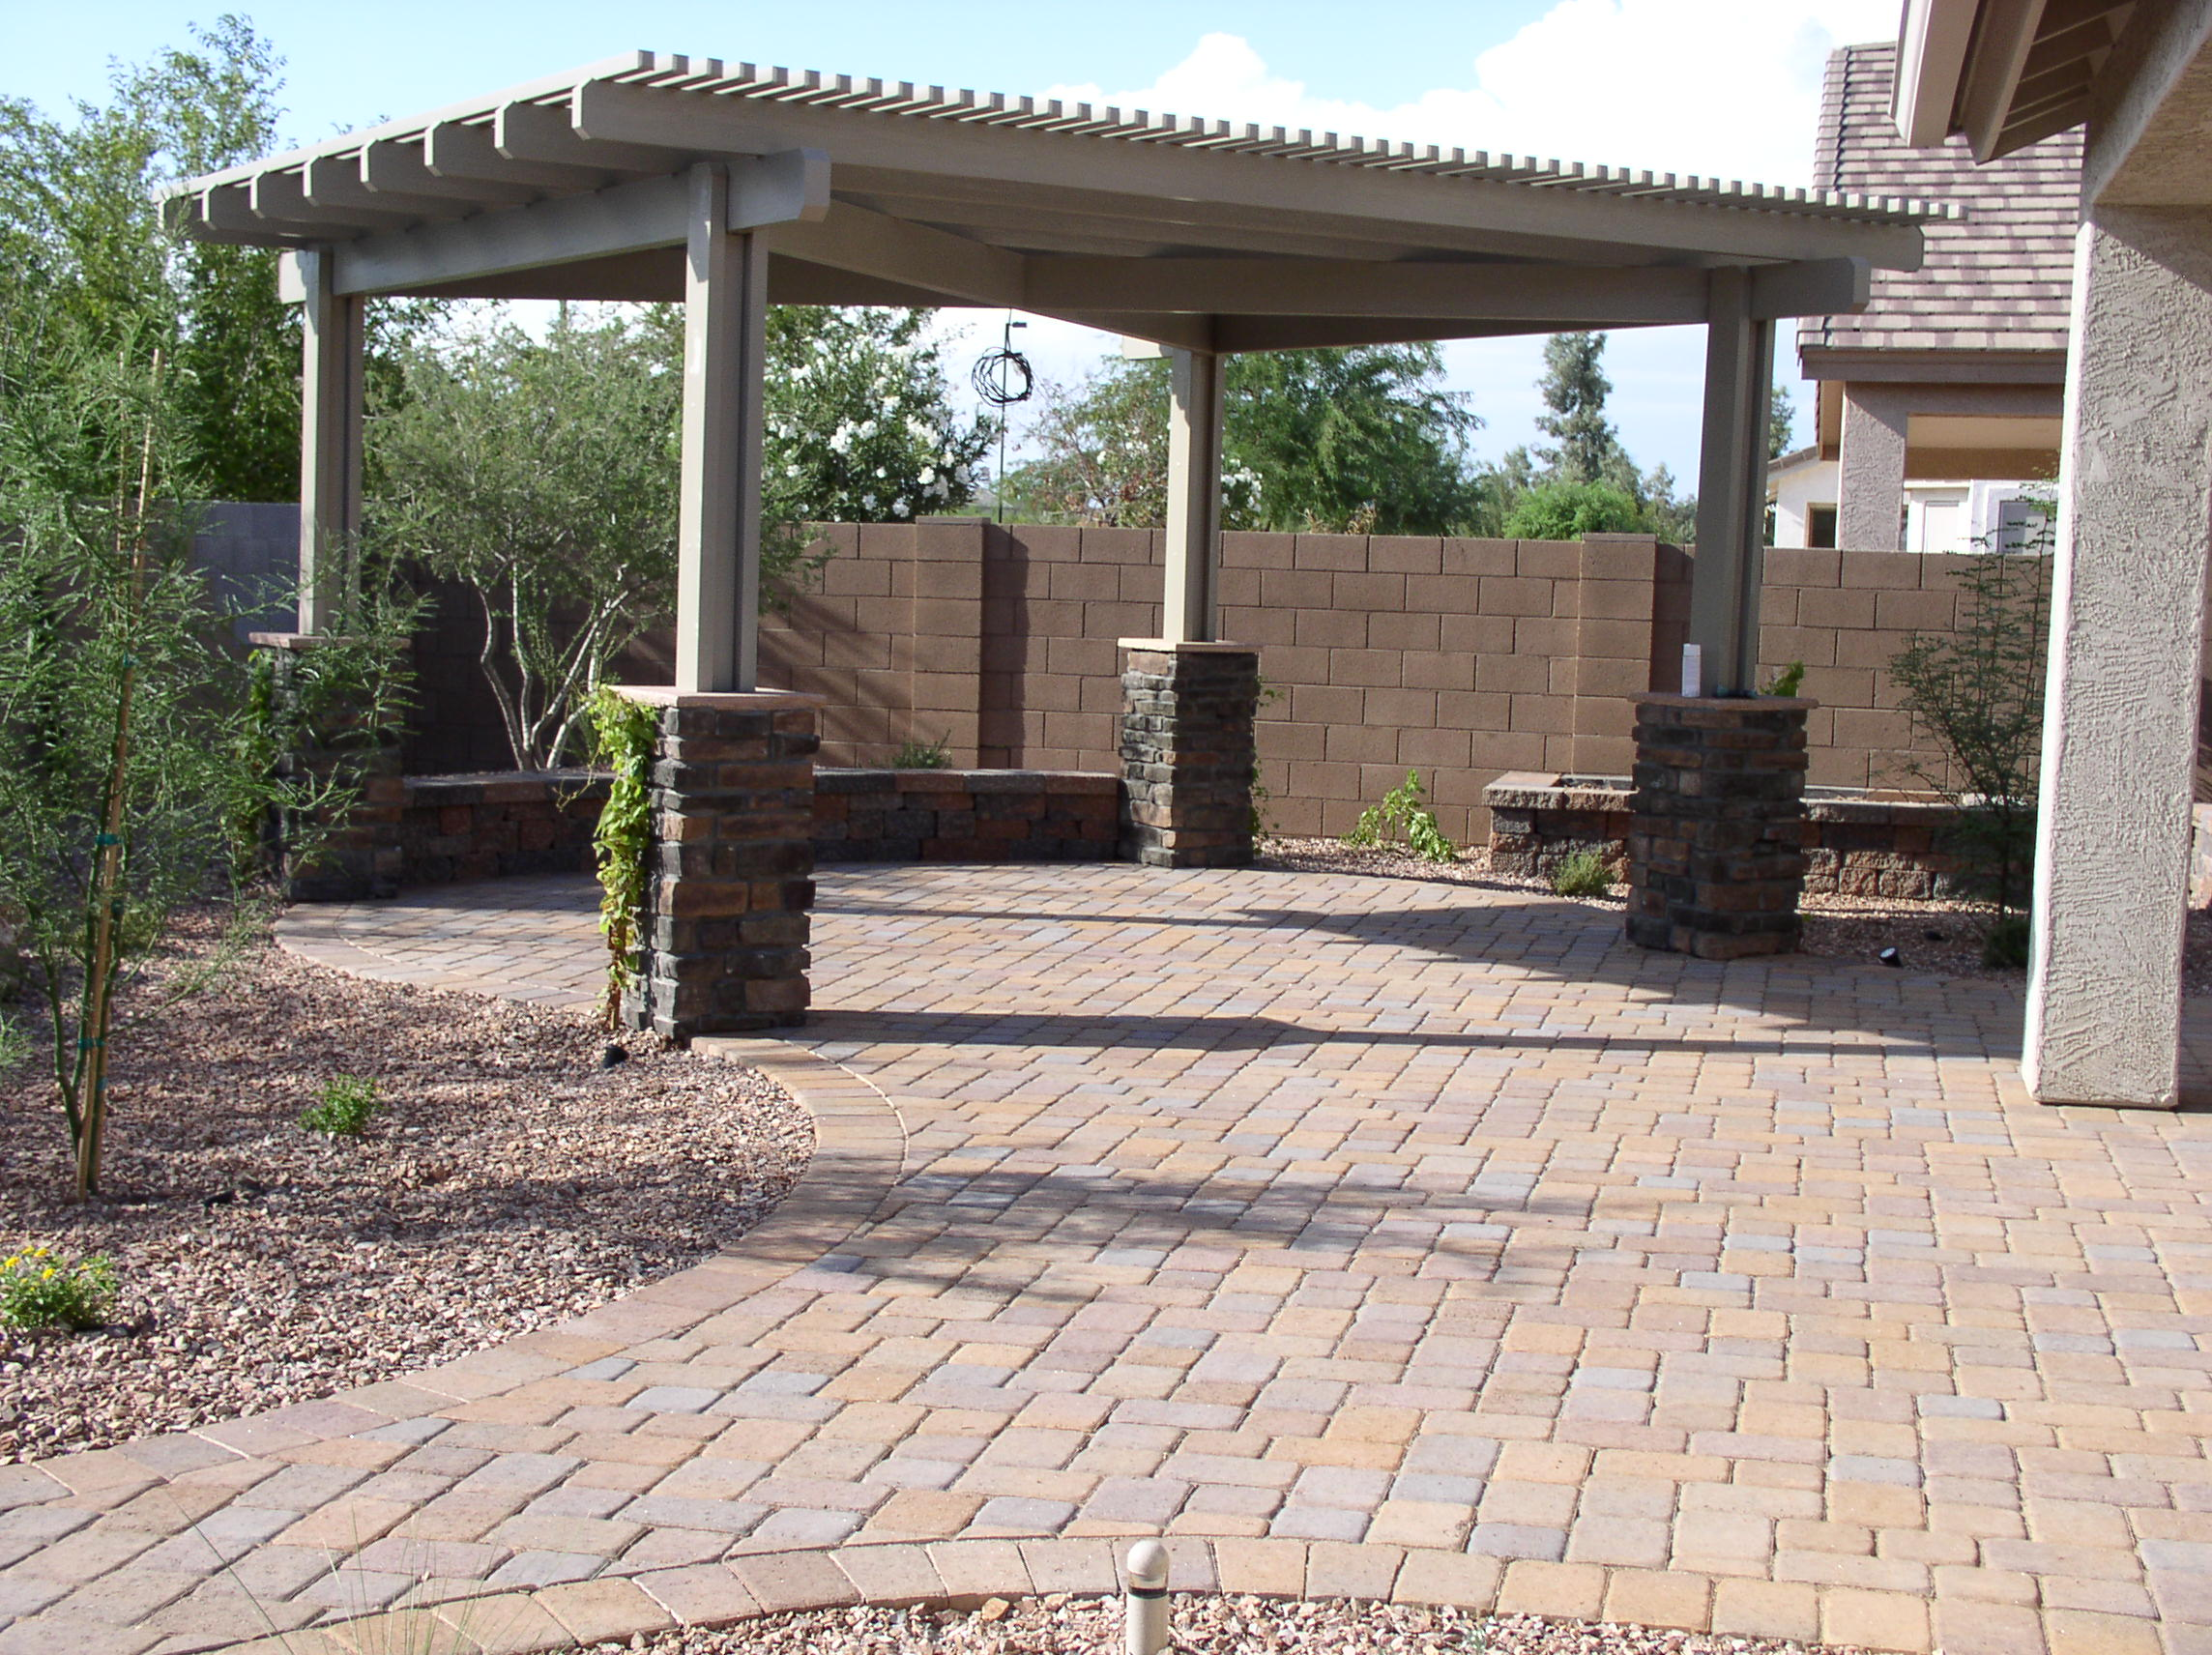 Paver Designs and Paver Ideas for Your Backyard Patios on Yard Paver Ideas  id=97988